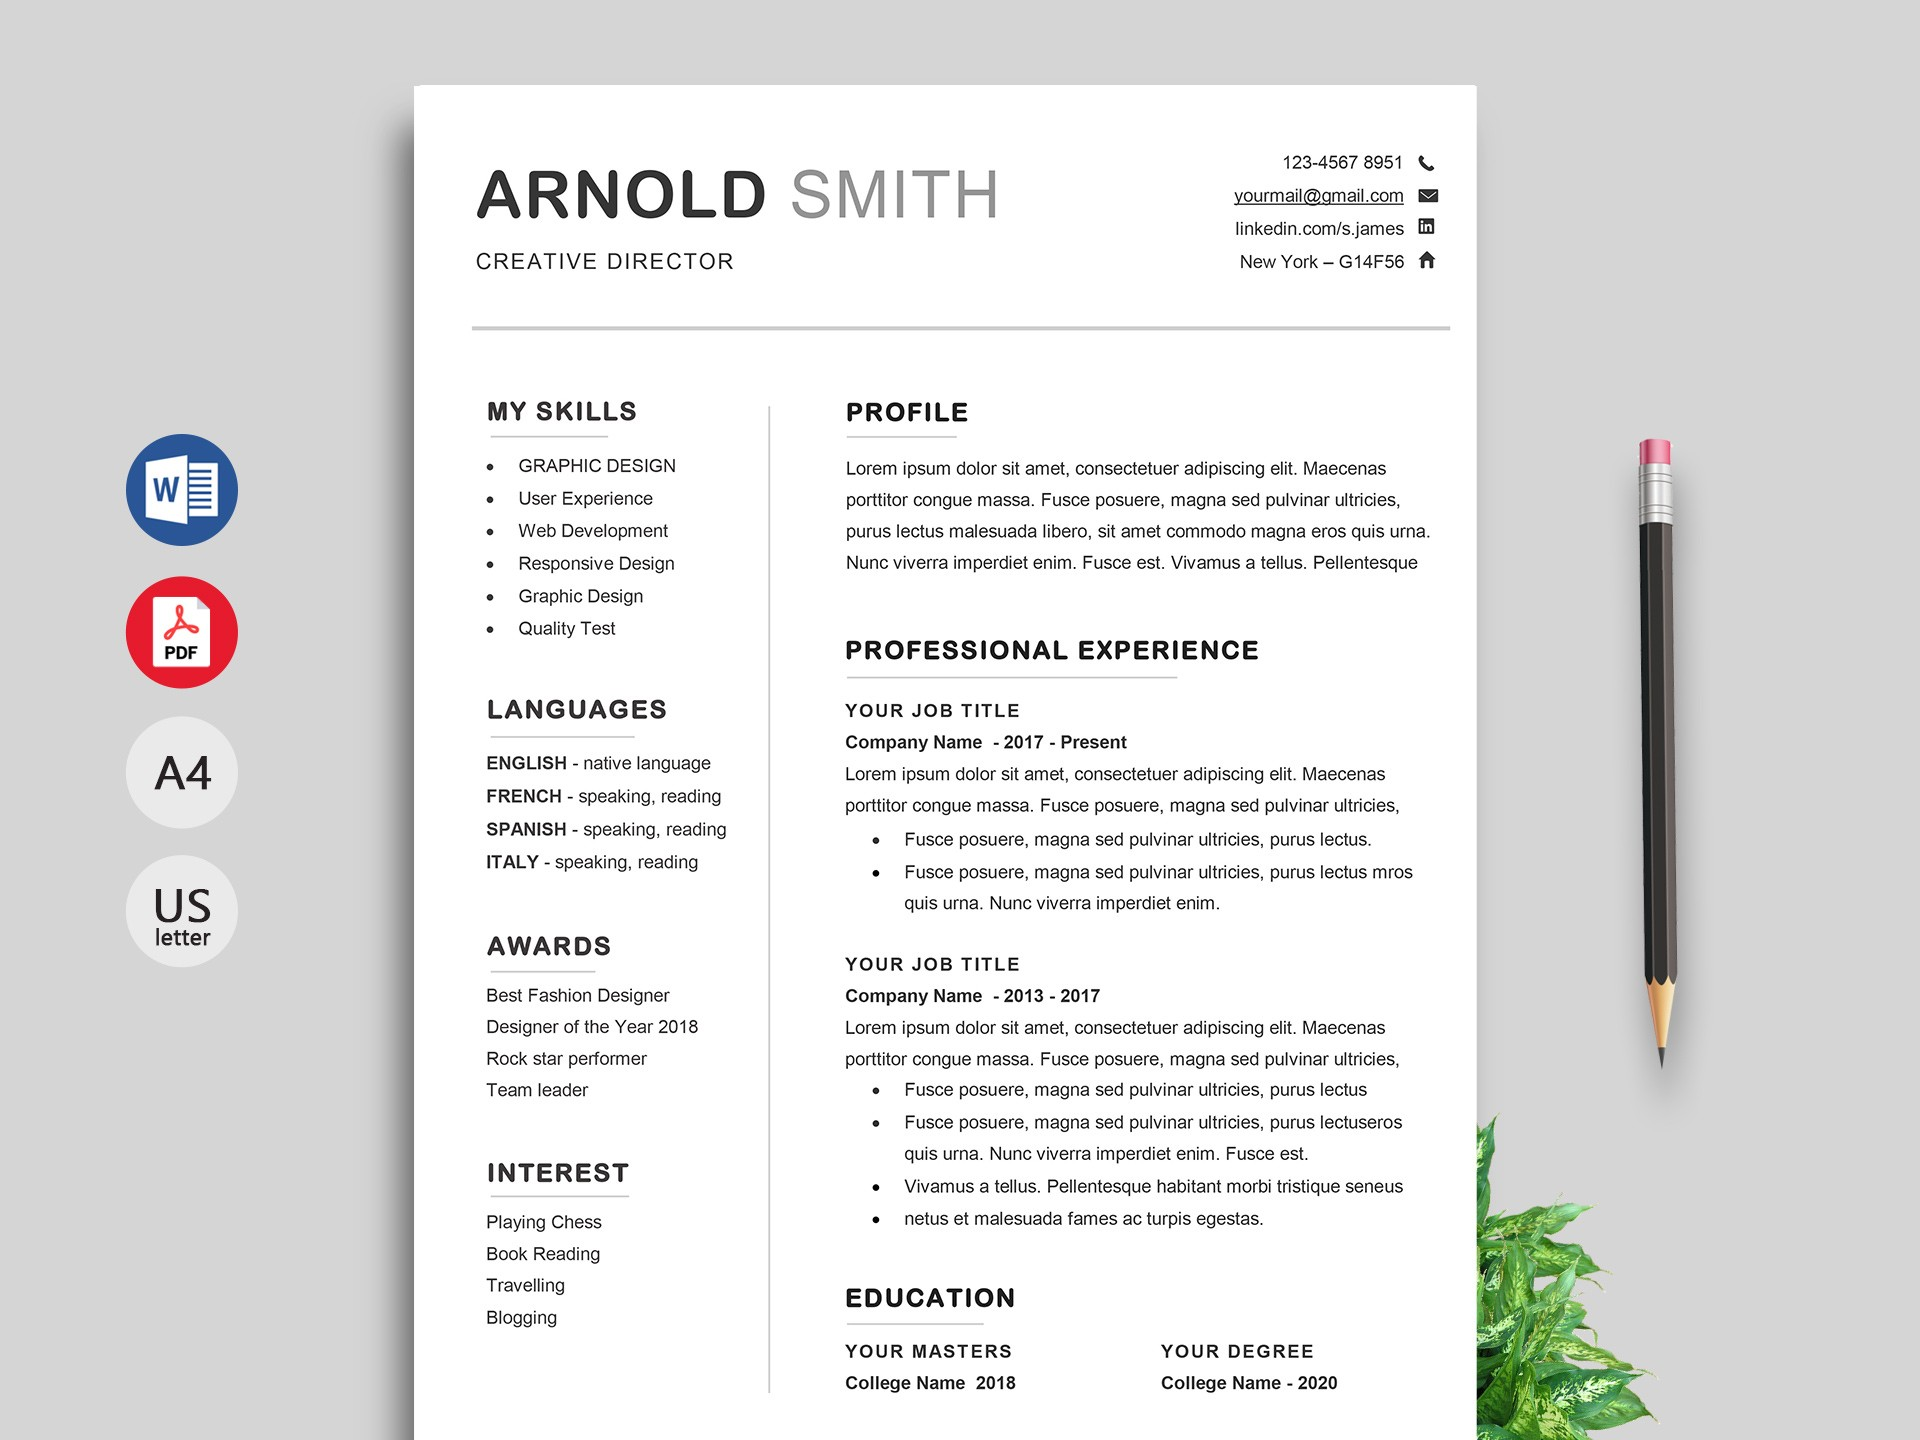 001 Astounding Best Resume Template Free High Resolution  2019 2018 Top Download1920